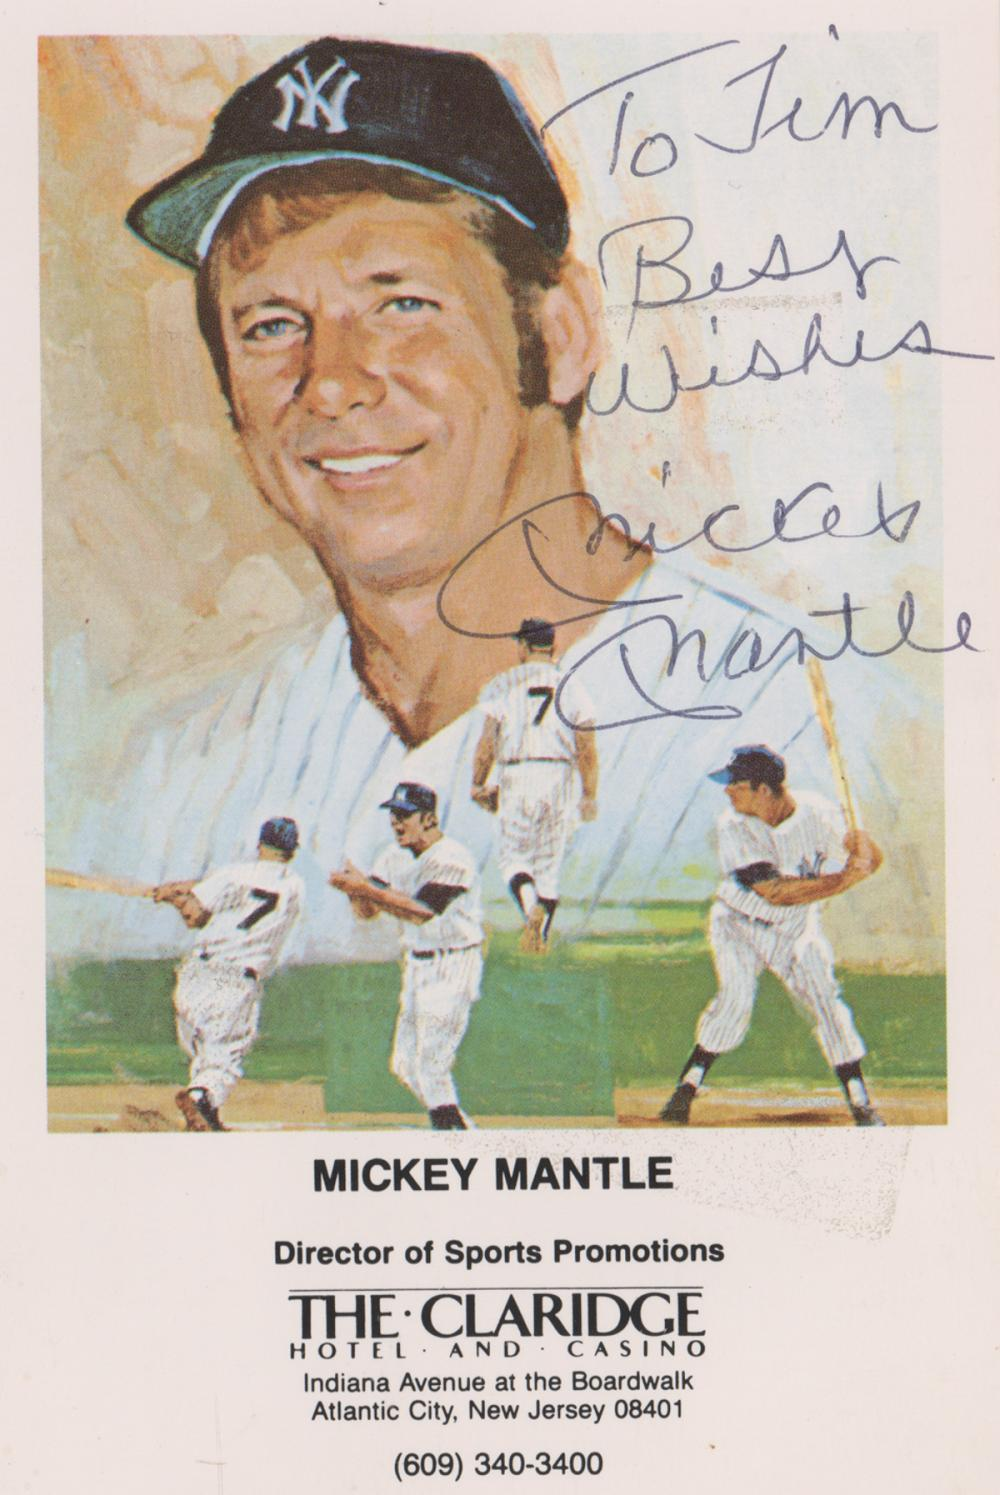 Mickey Mantle Signed Color Postcard Beckett LOA